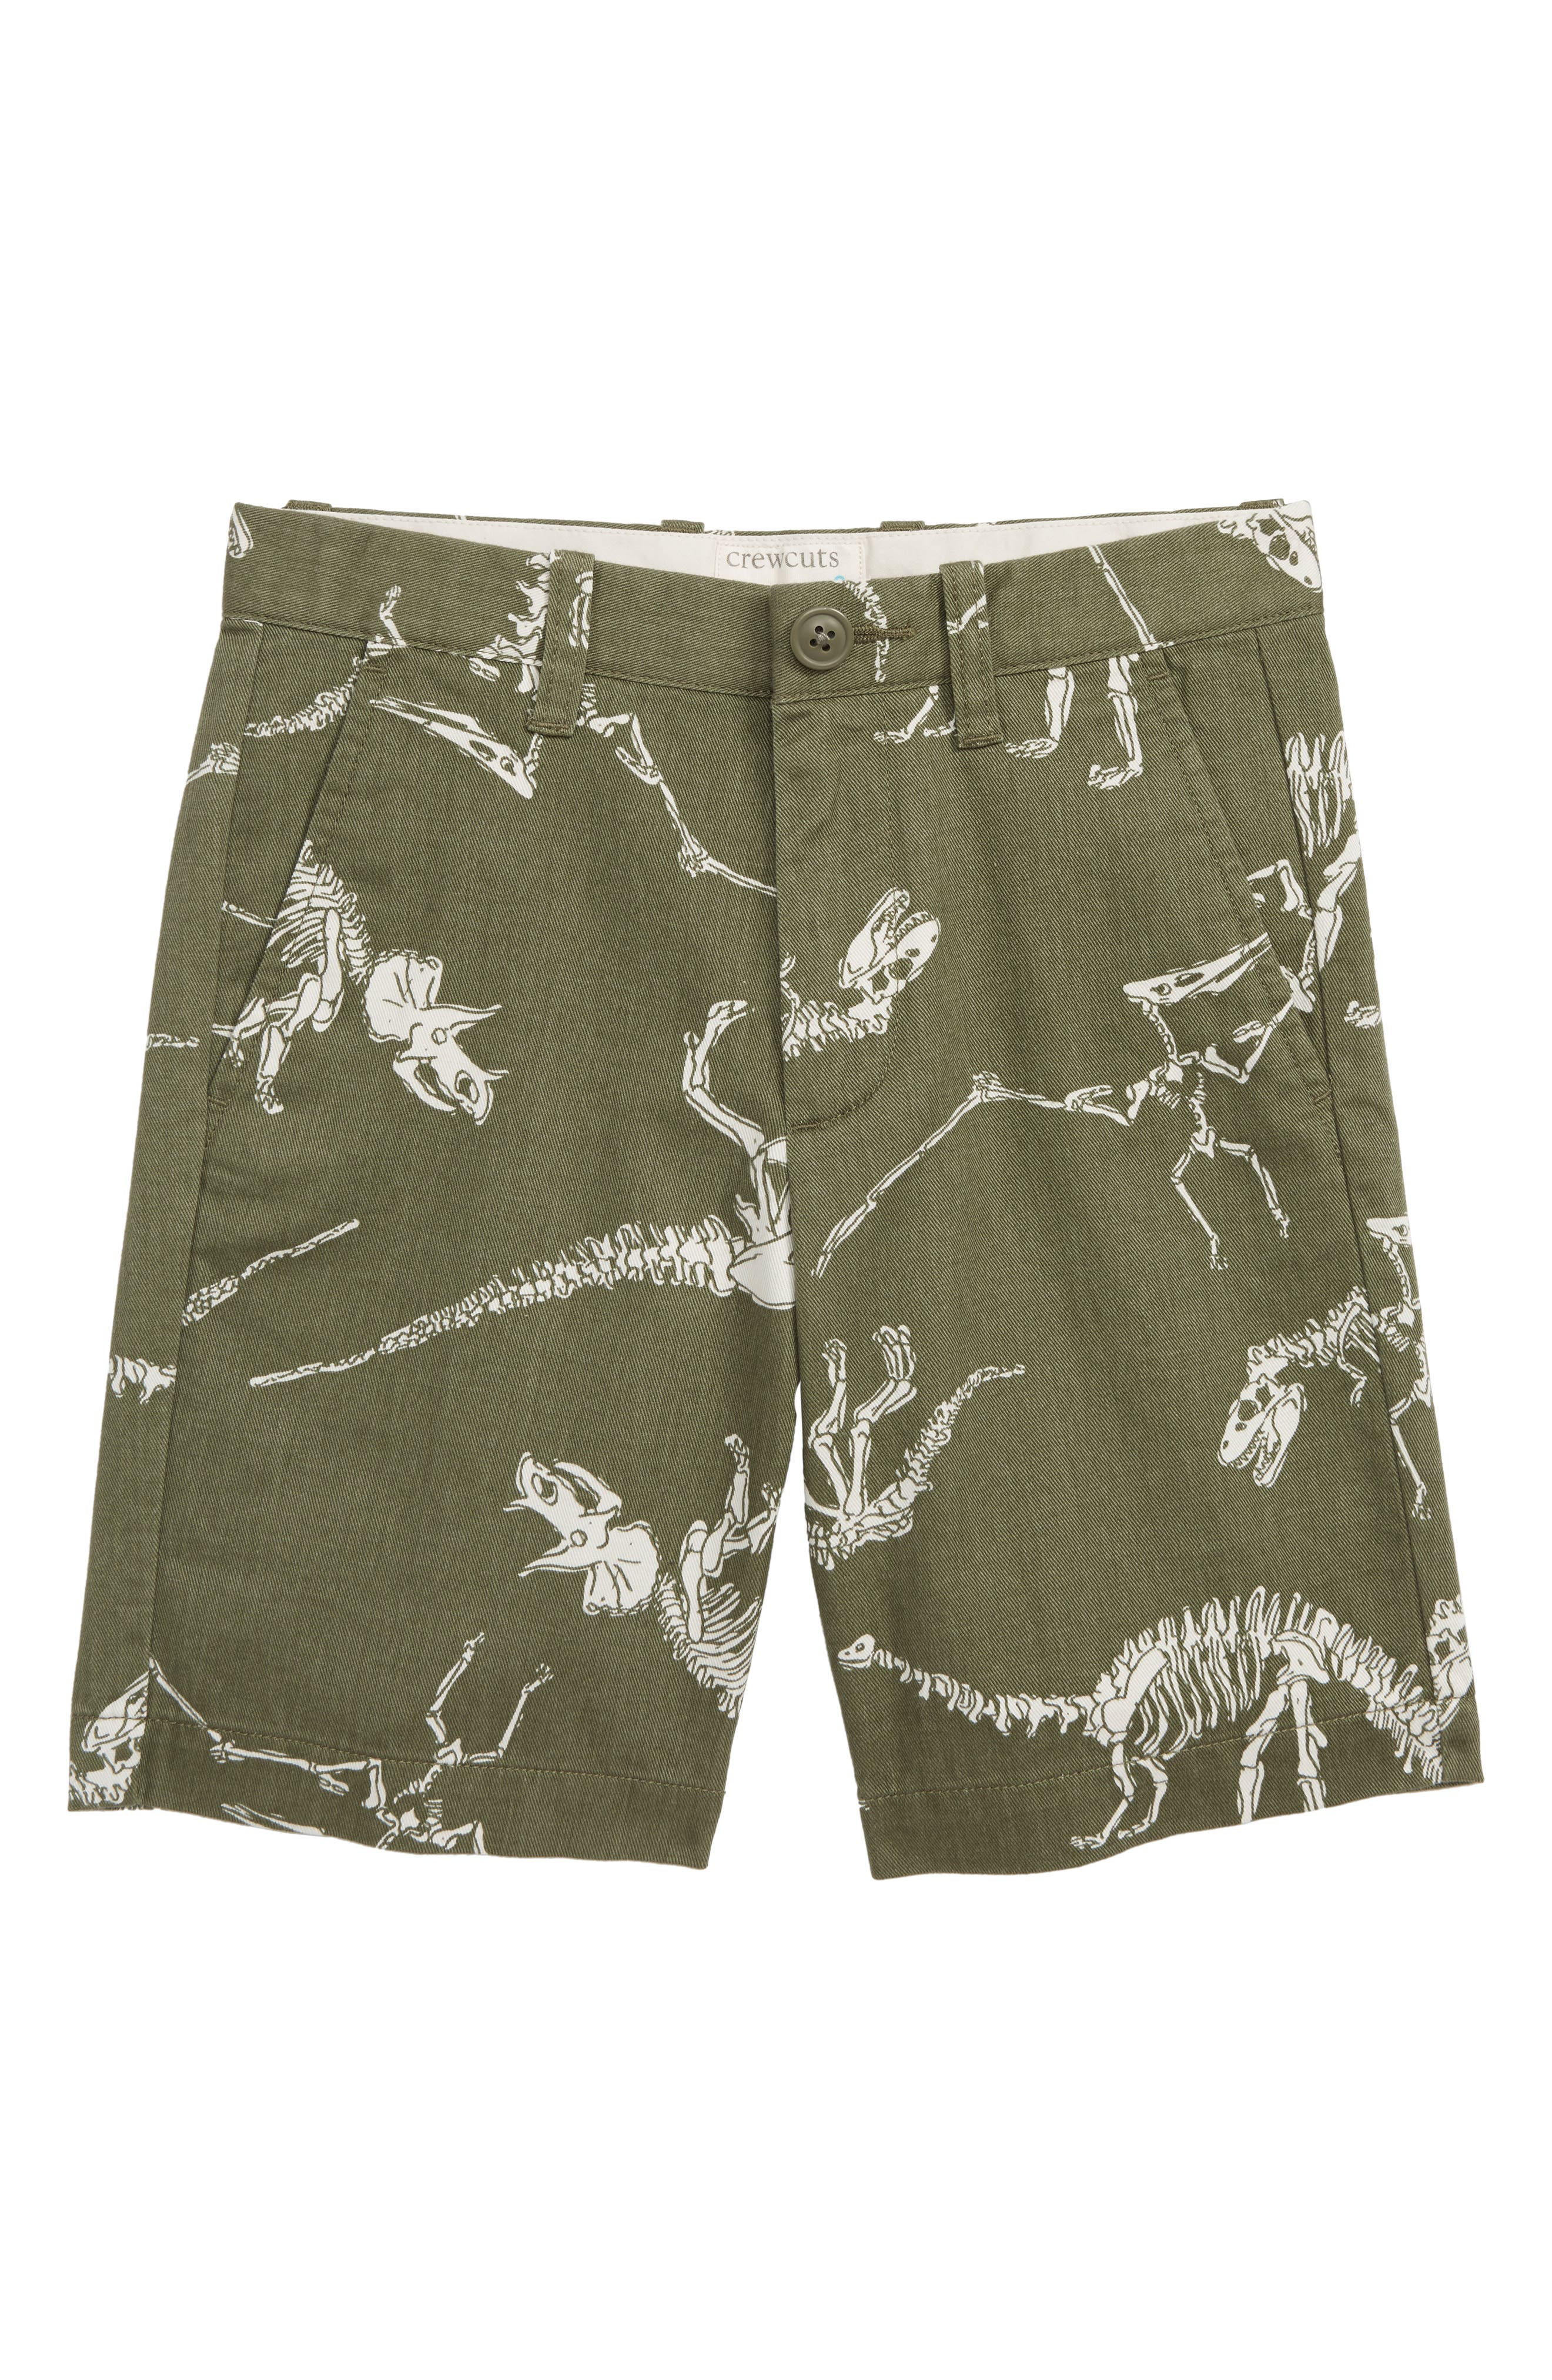 CREWCUTS BY J.CREW Stanton Dino Print Shorts, Main, color, LOVELY DINO BONE GREEN NATURAL